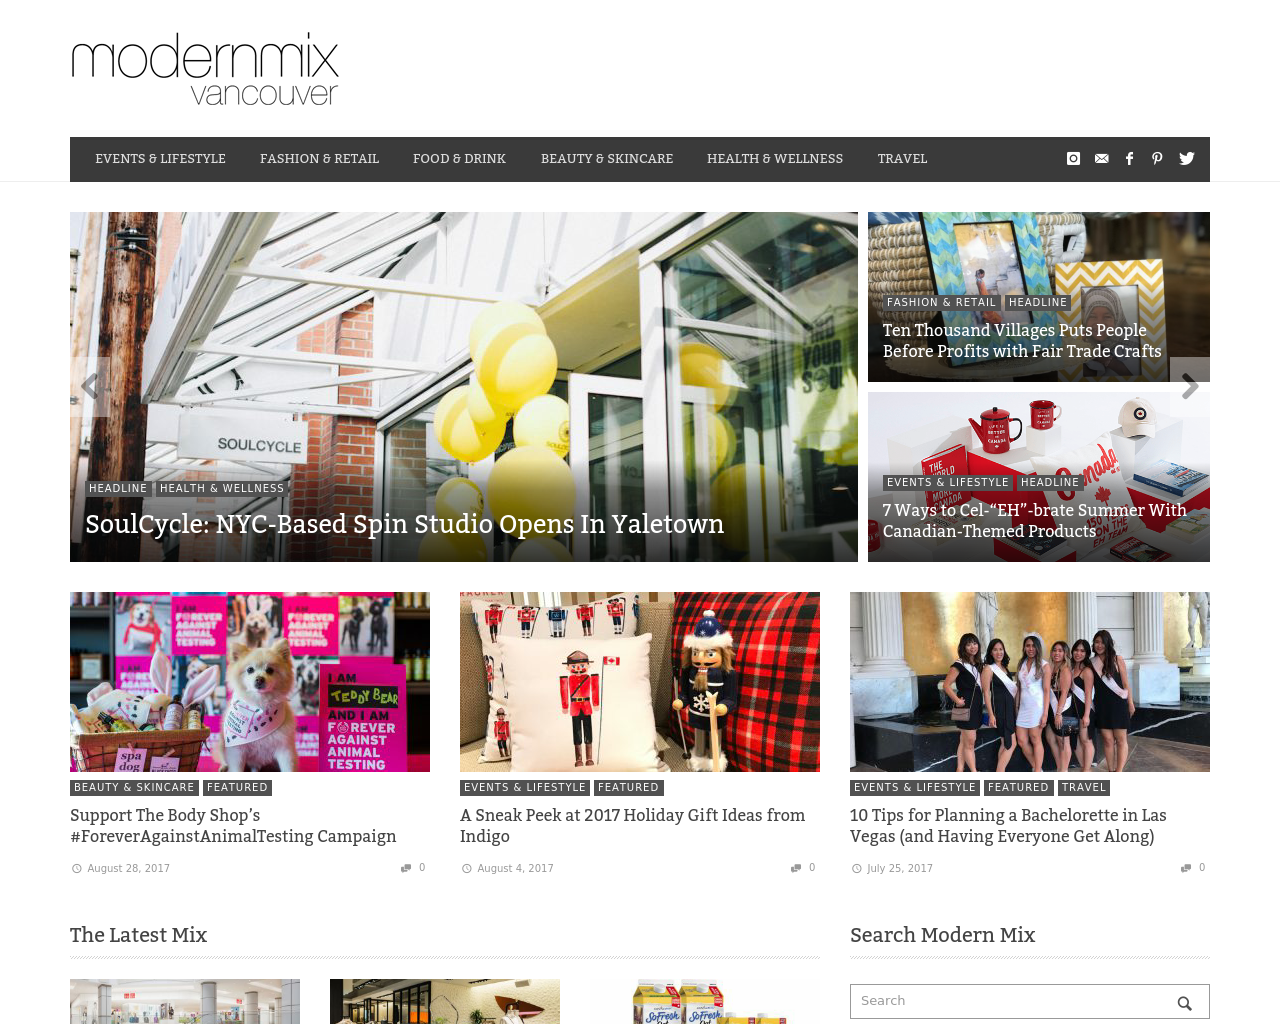 Modern-Mix-Vancouver-Advertising-Reviews-Pricing